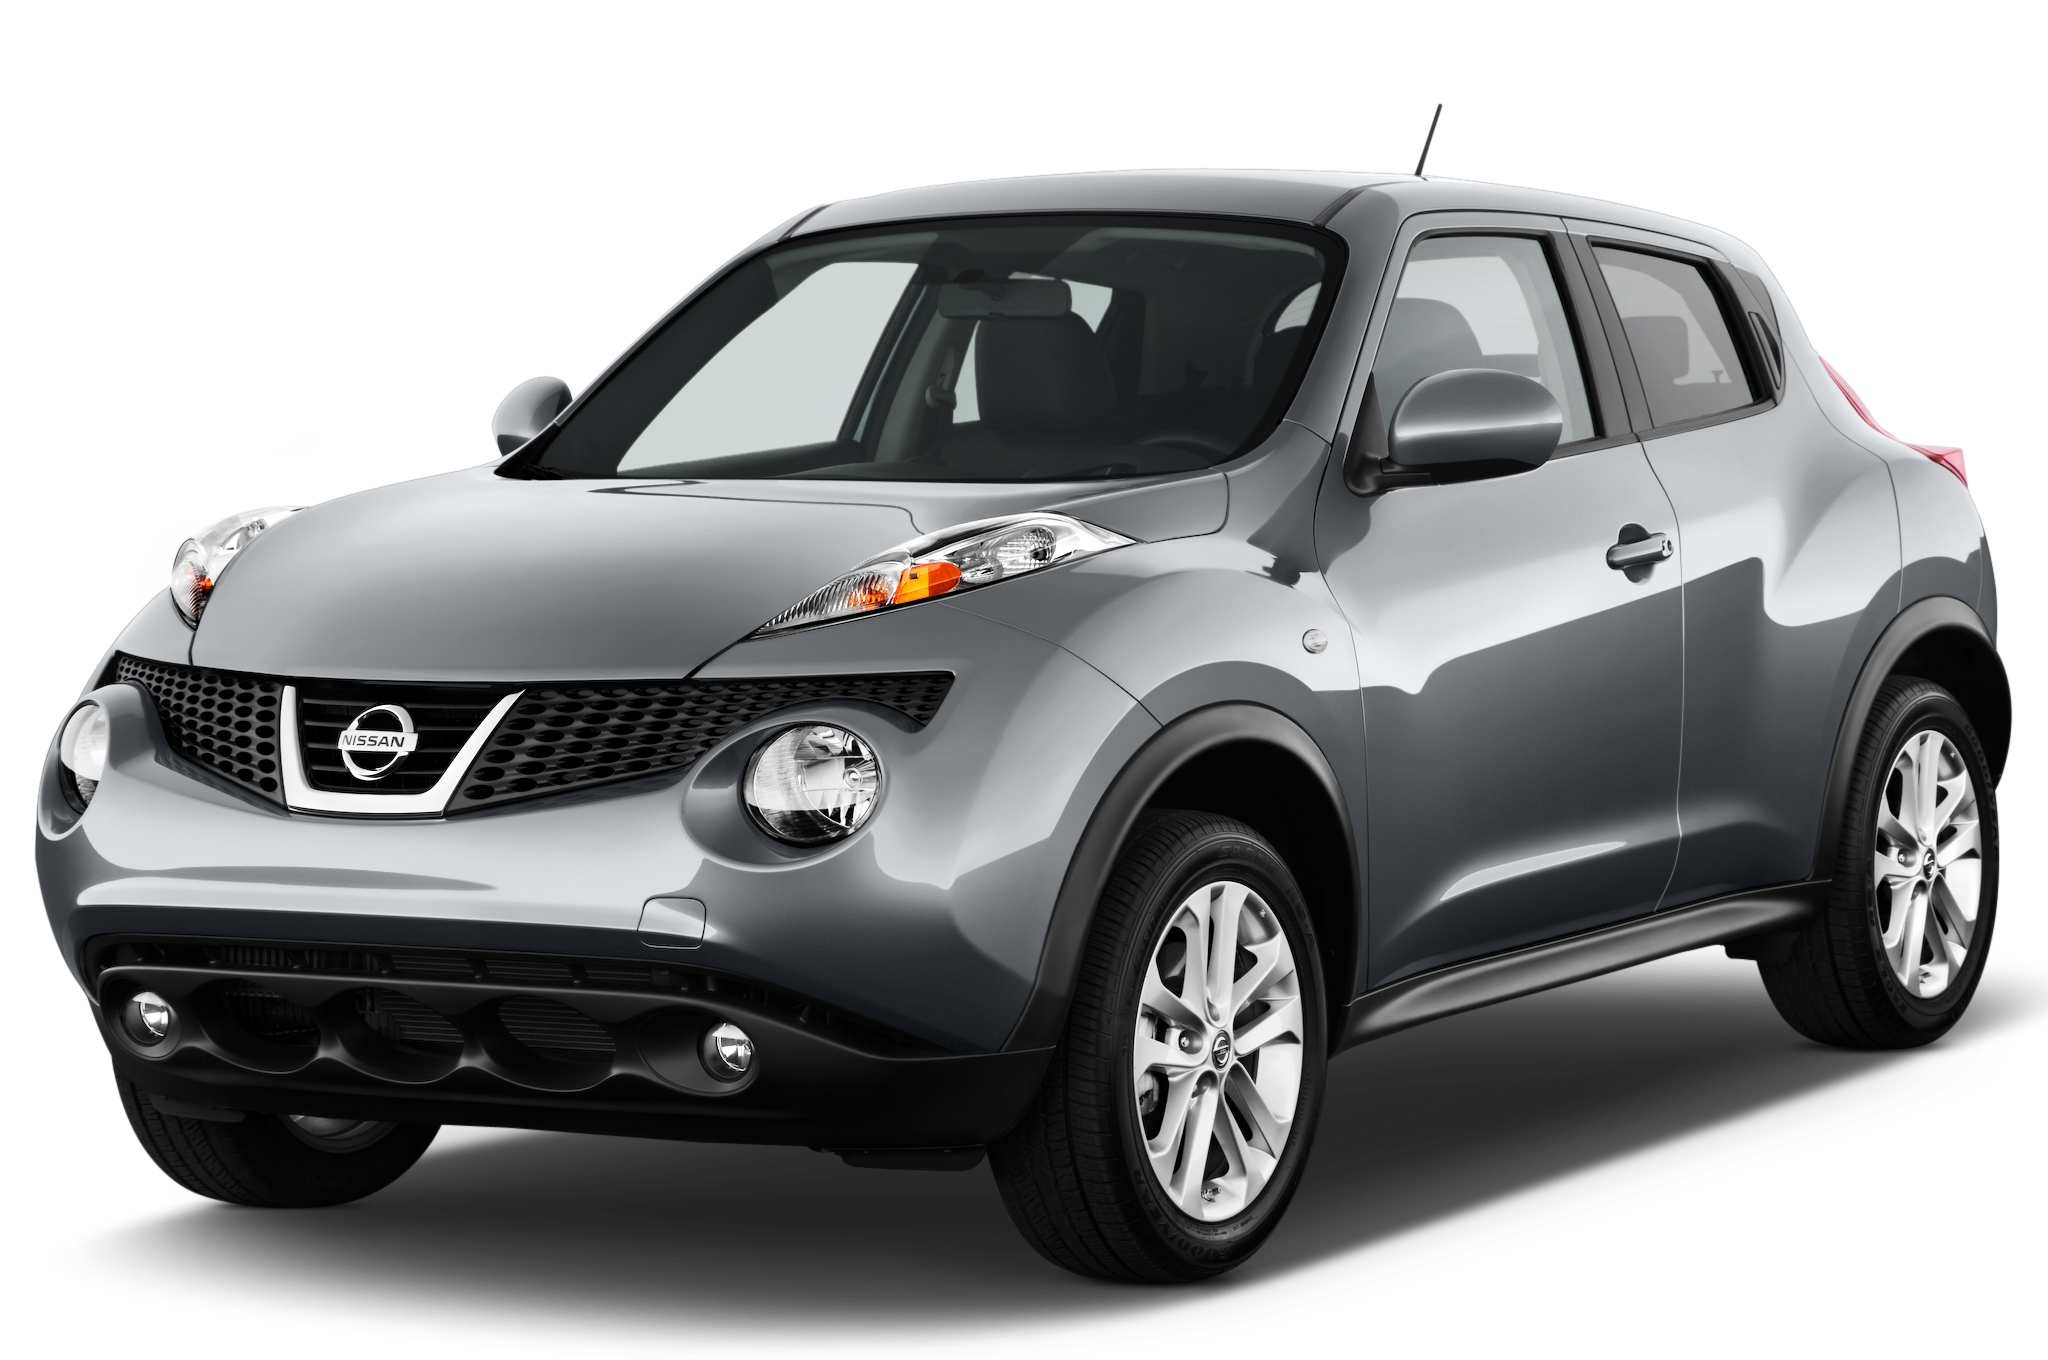 nissan juke 1 6 el gance voiture maroc. Black Bedroom Furniture Sets. Home Design Ideas